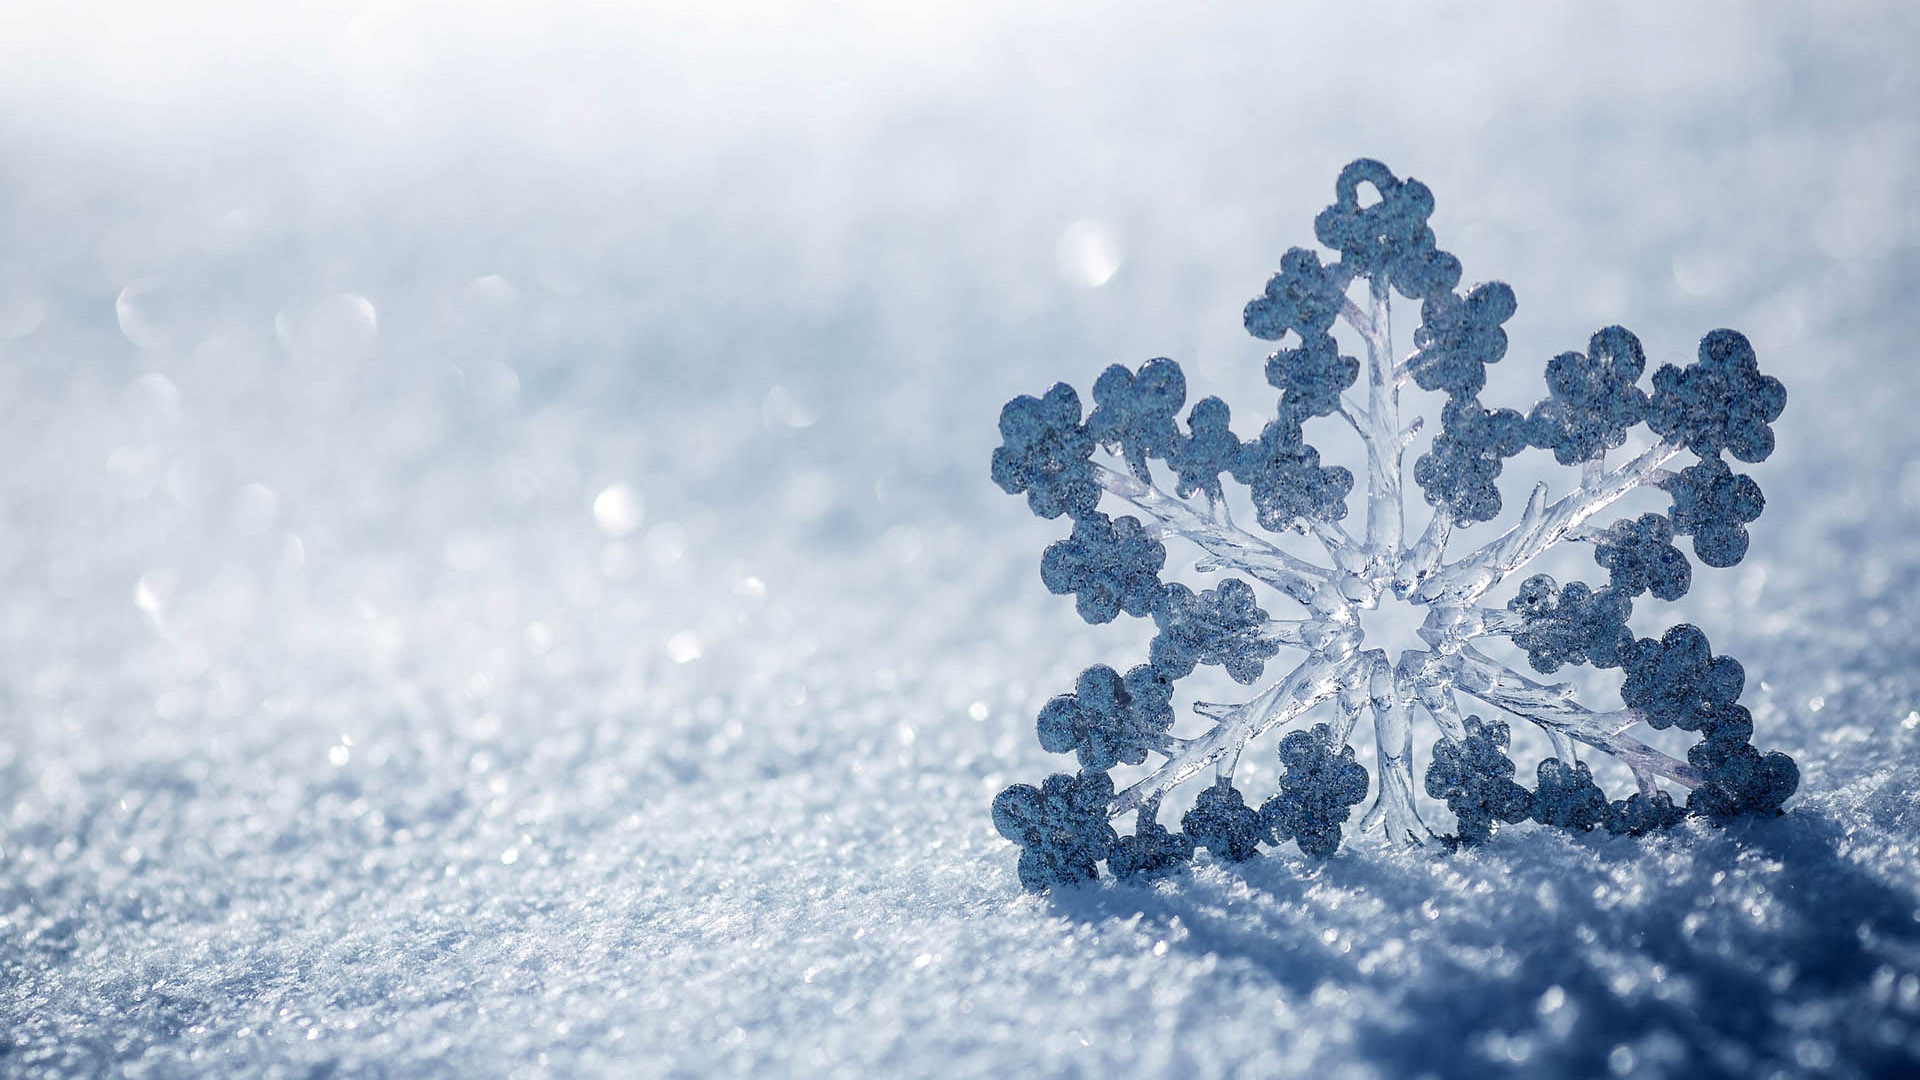 Snowflake background wallpaper high definition high quality snowflake background voltagebd Gallery